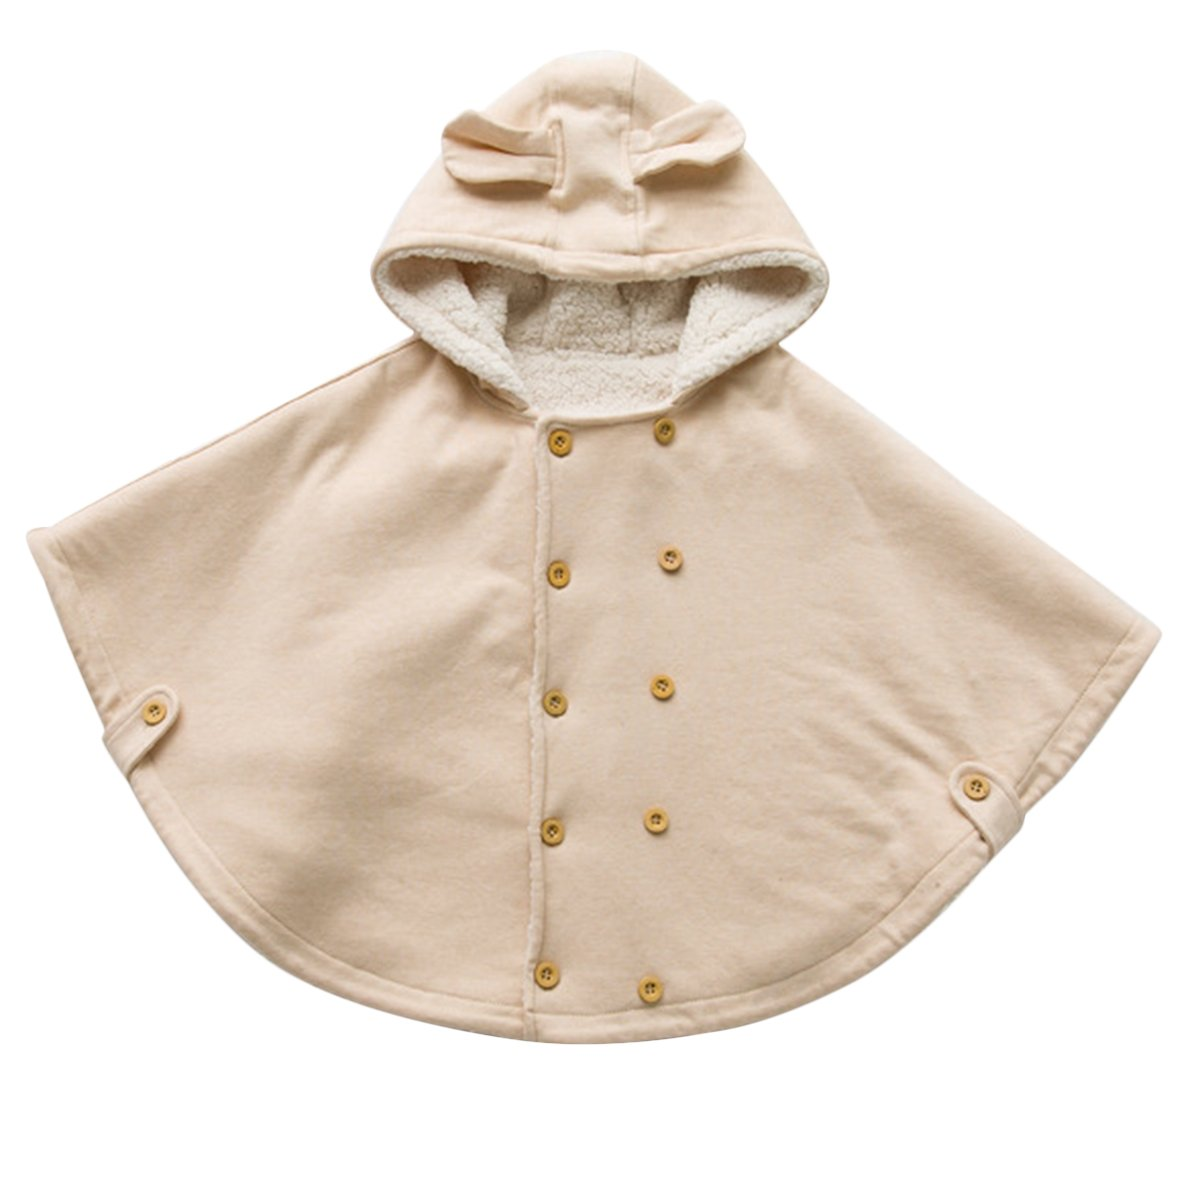 Poliking Unisex Baby Kids Toddlers Wear Hooded Cape Double Row Wood Button With Hat Cloak  by Poliking